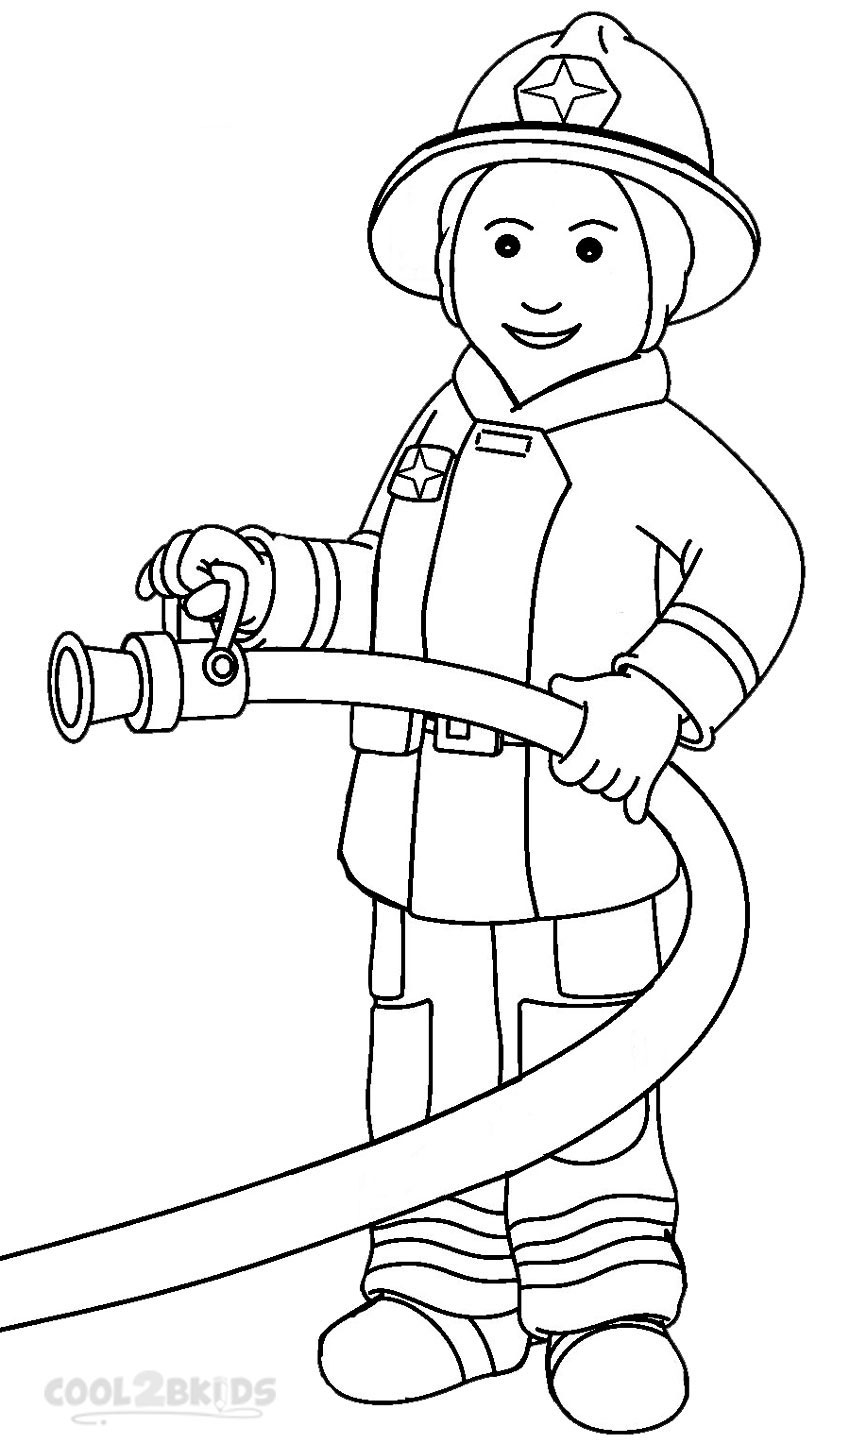 coloring clipart of kids children waving at each other coloring page stock coloring kids clipart of